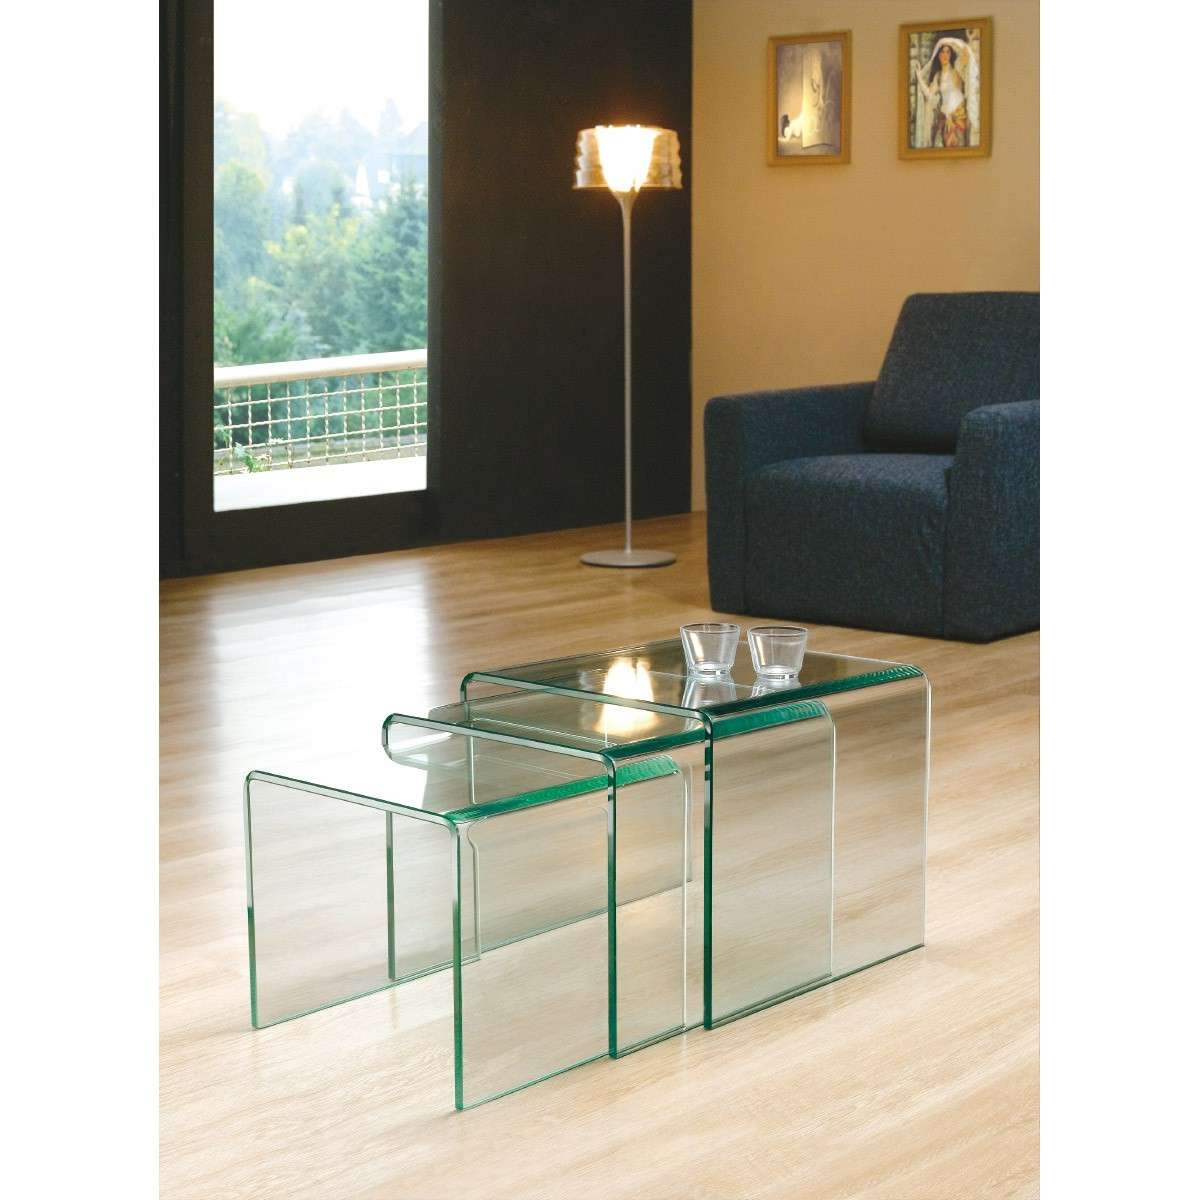 Most Popular Transparent Glass Coffee Tables Intended For Nest Of 3 Bent Clear Glass Side Coffee Tables – Transparent Three (View 14 of 20)